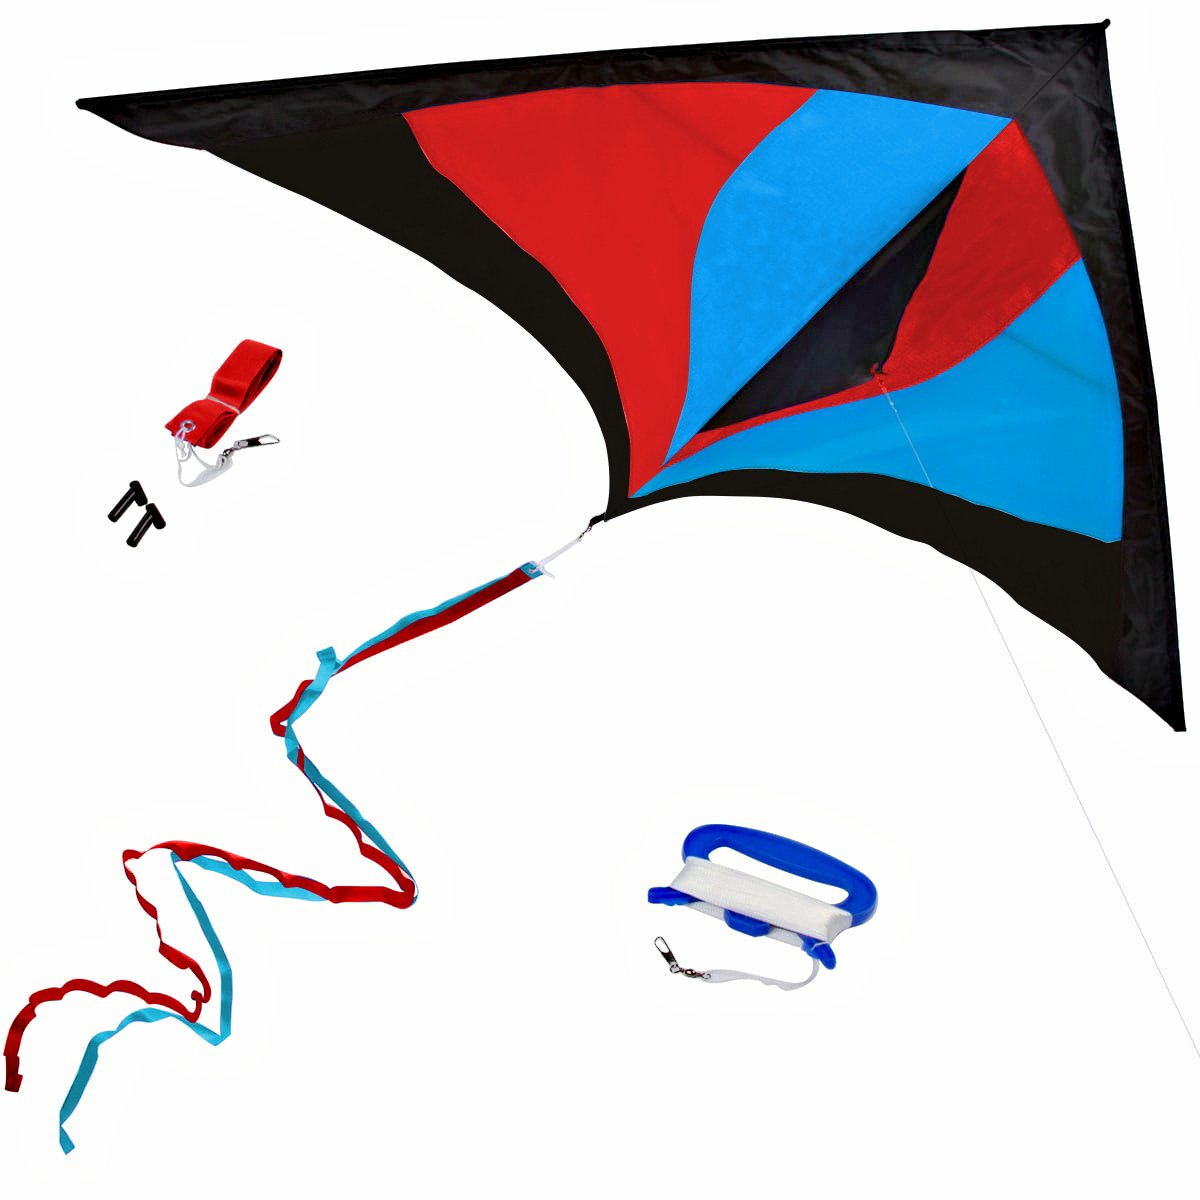 StuffKidsLove Best Delta Kite, Easy Fly for Kids and Beginners, Single Line w/Tail Ribbons, Stunning Red, Blue & Black, Materials, Large, Meticulous Design and Testing + Guarantee + Bonuses! by StuffKidsLove